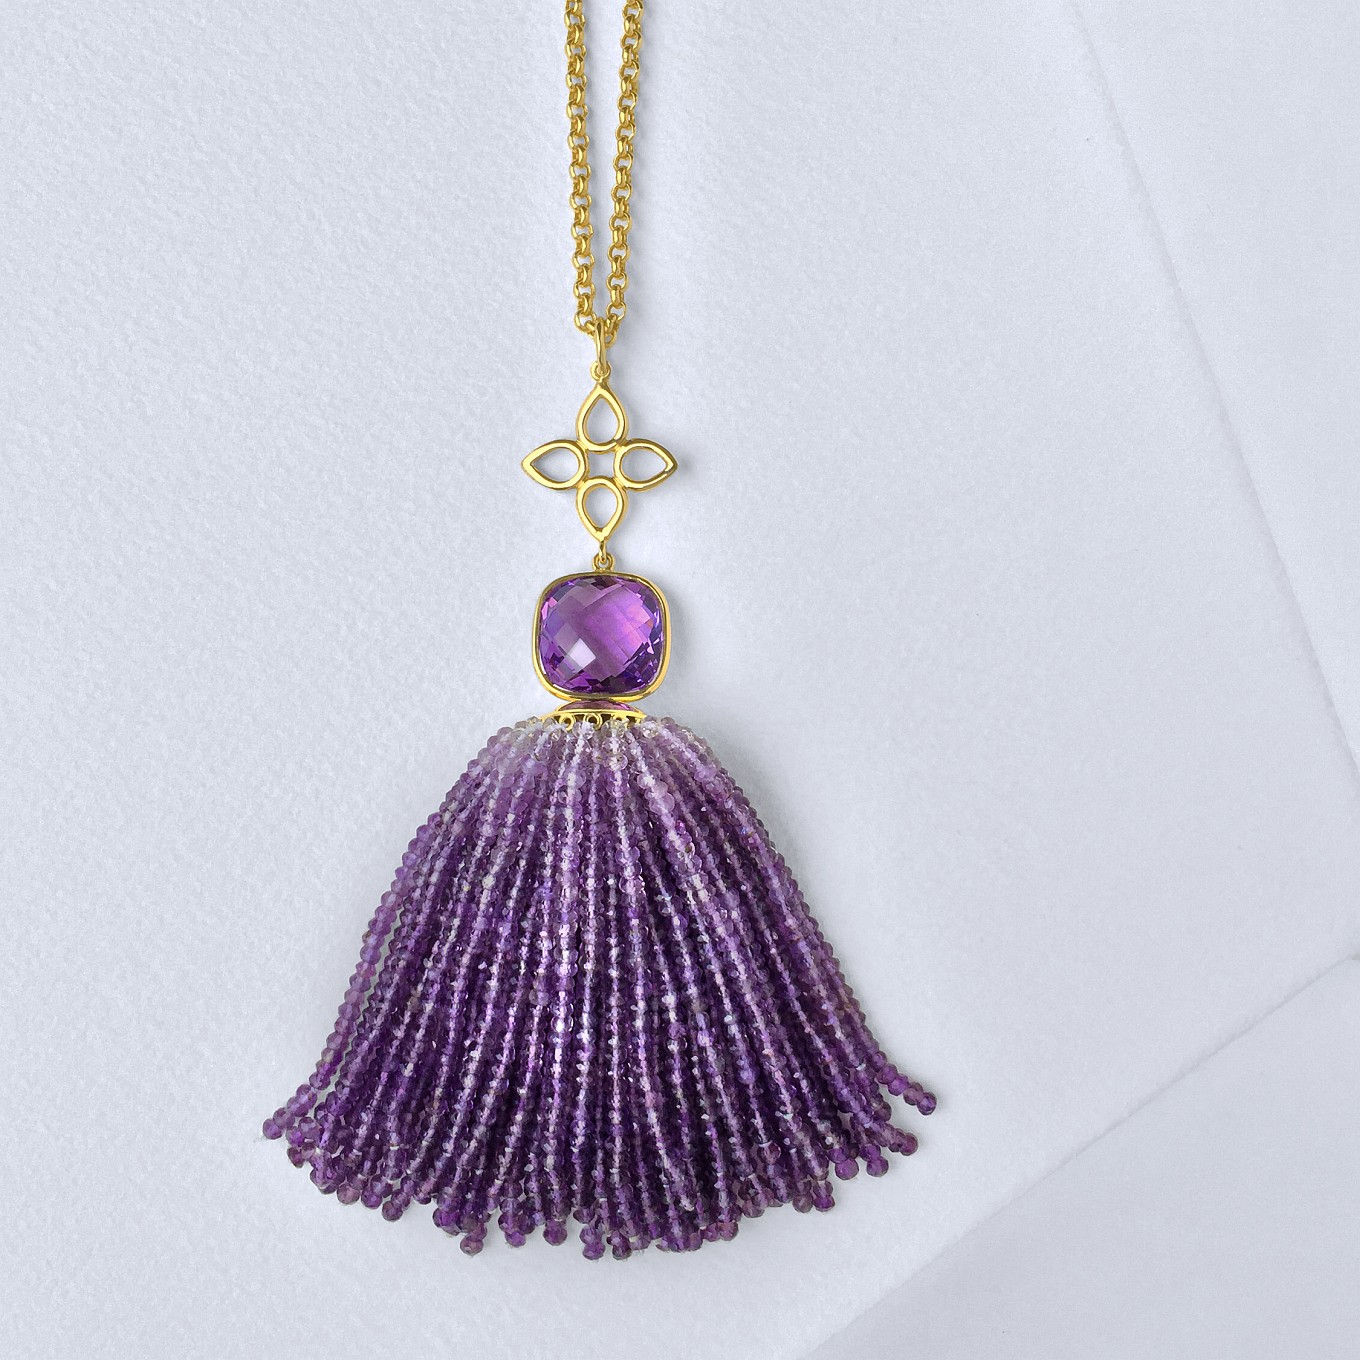 CUSHION CUT AMETHYST & GRADUATED AMETHYST BEAD PENDANT IN YELLOW GOLD